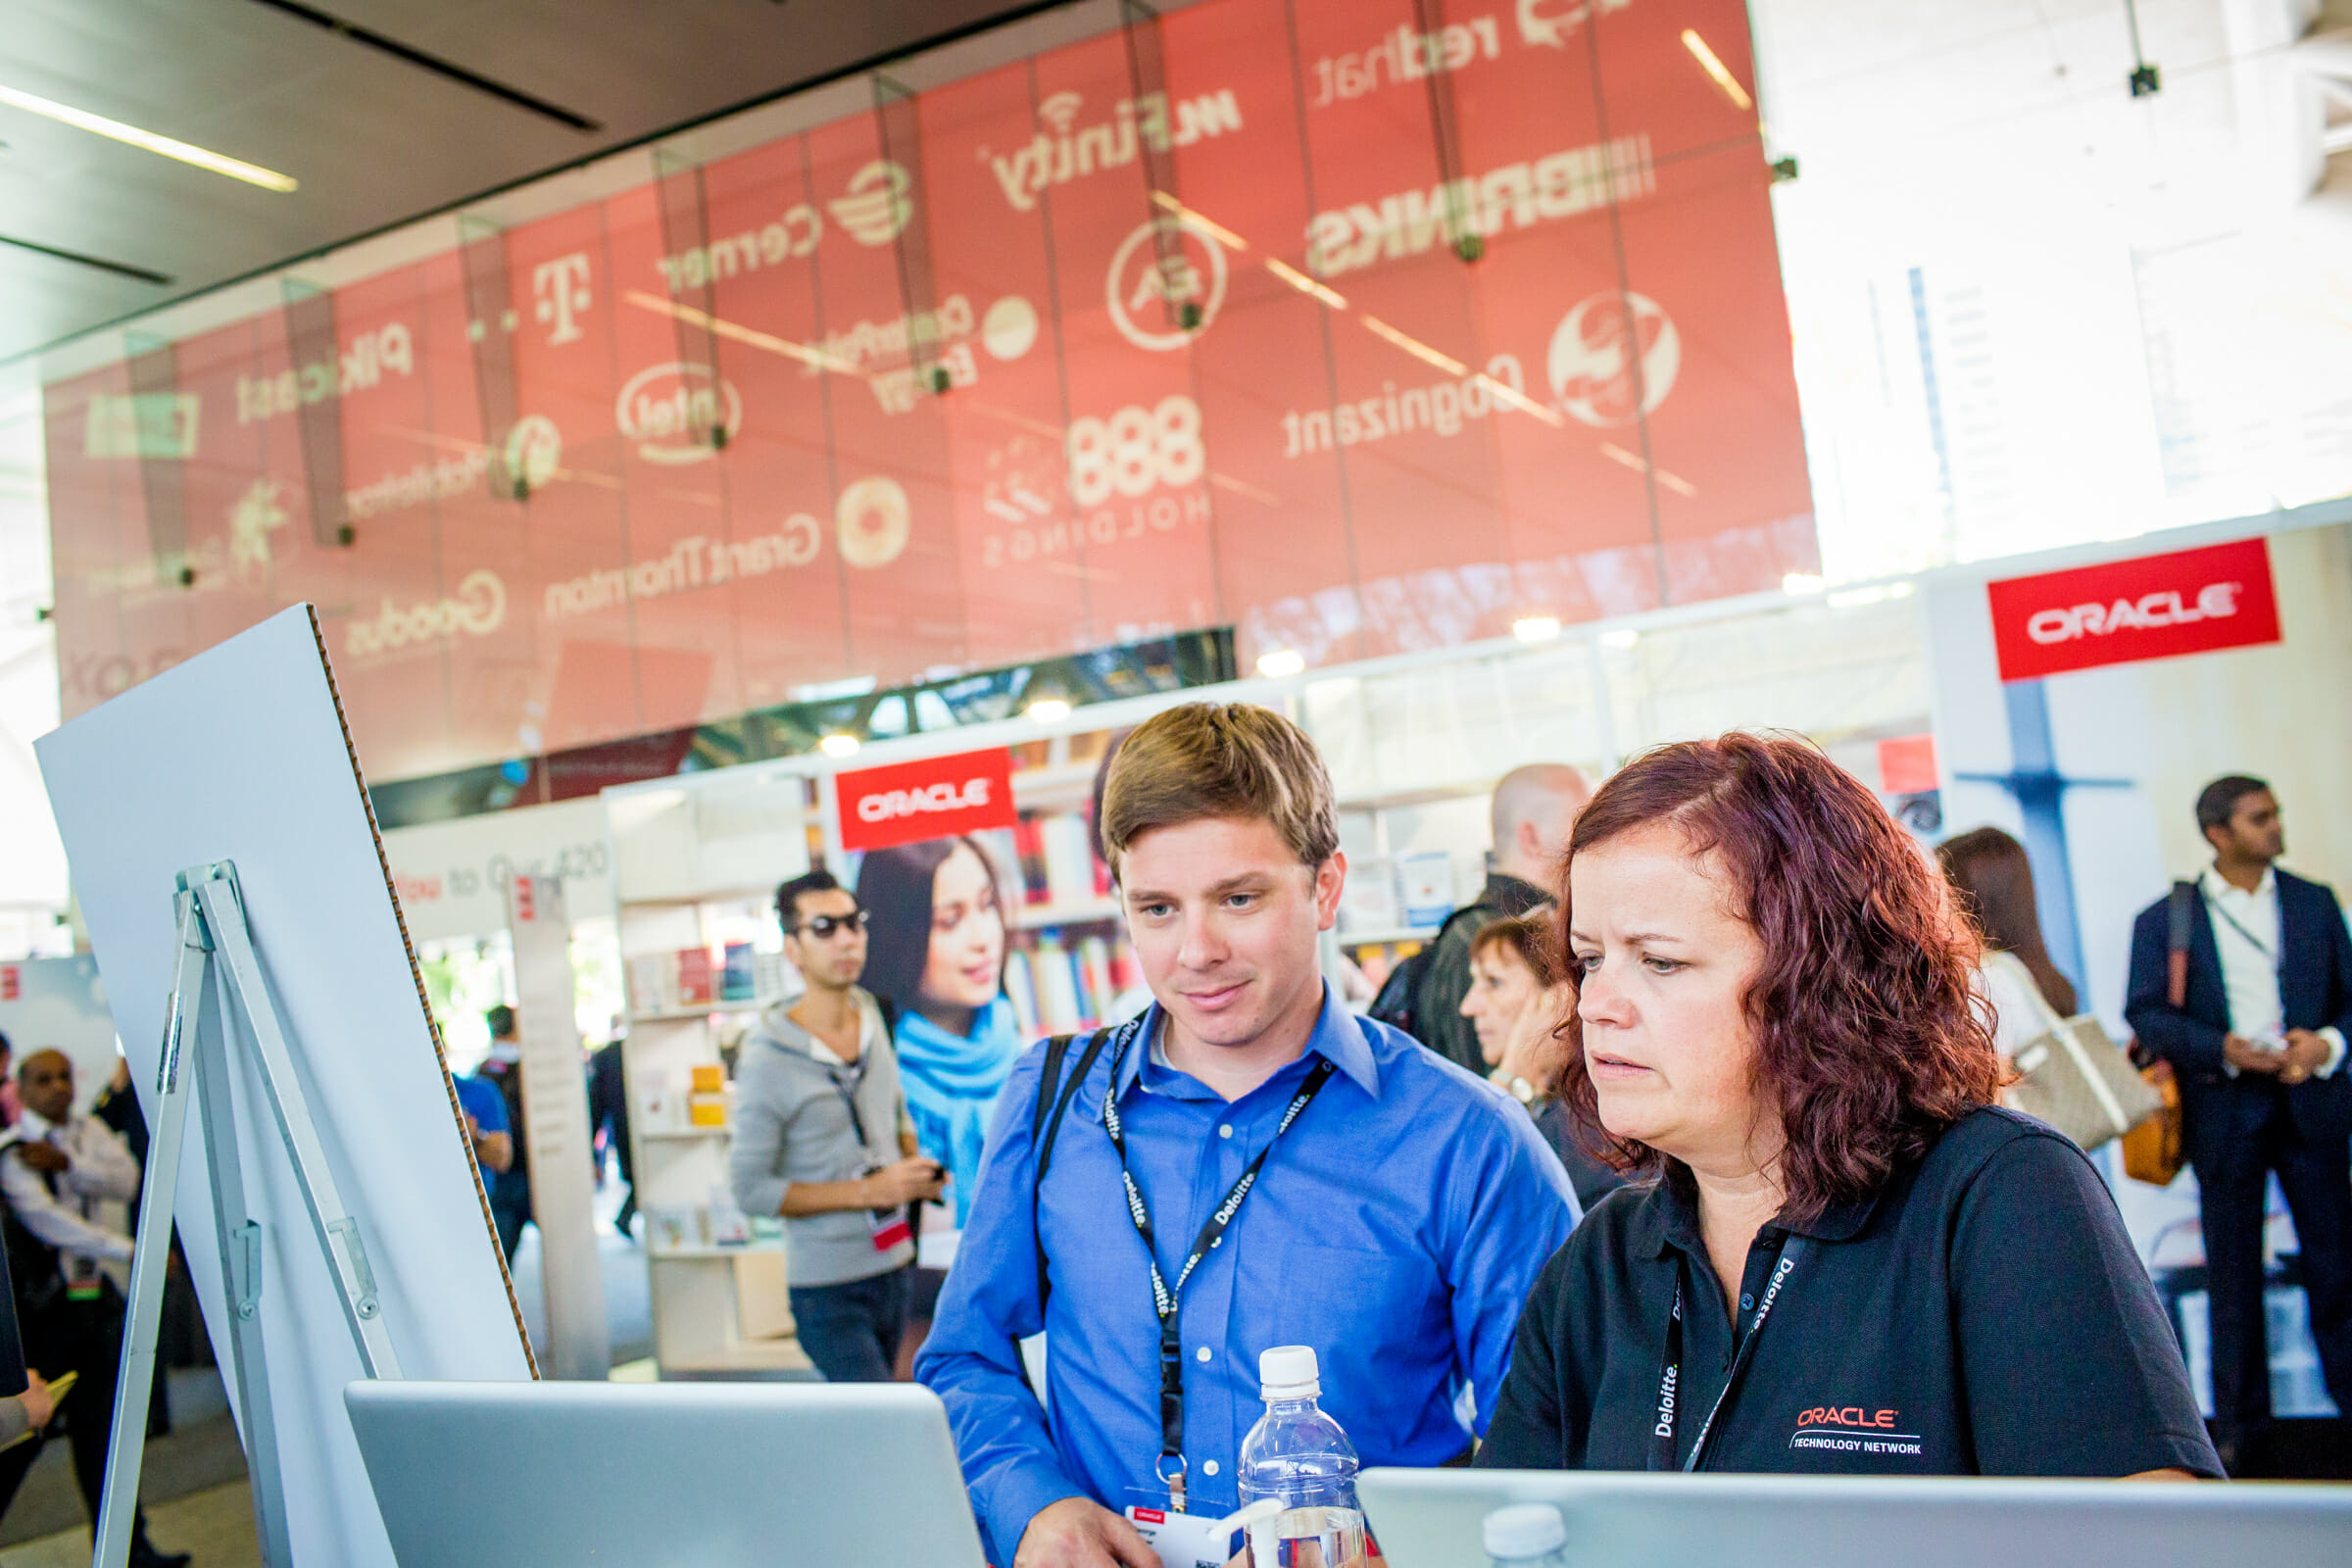 160919_OOW-SF-16-ExhibitionHall_0011